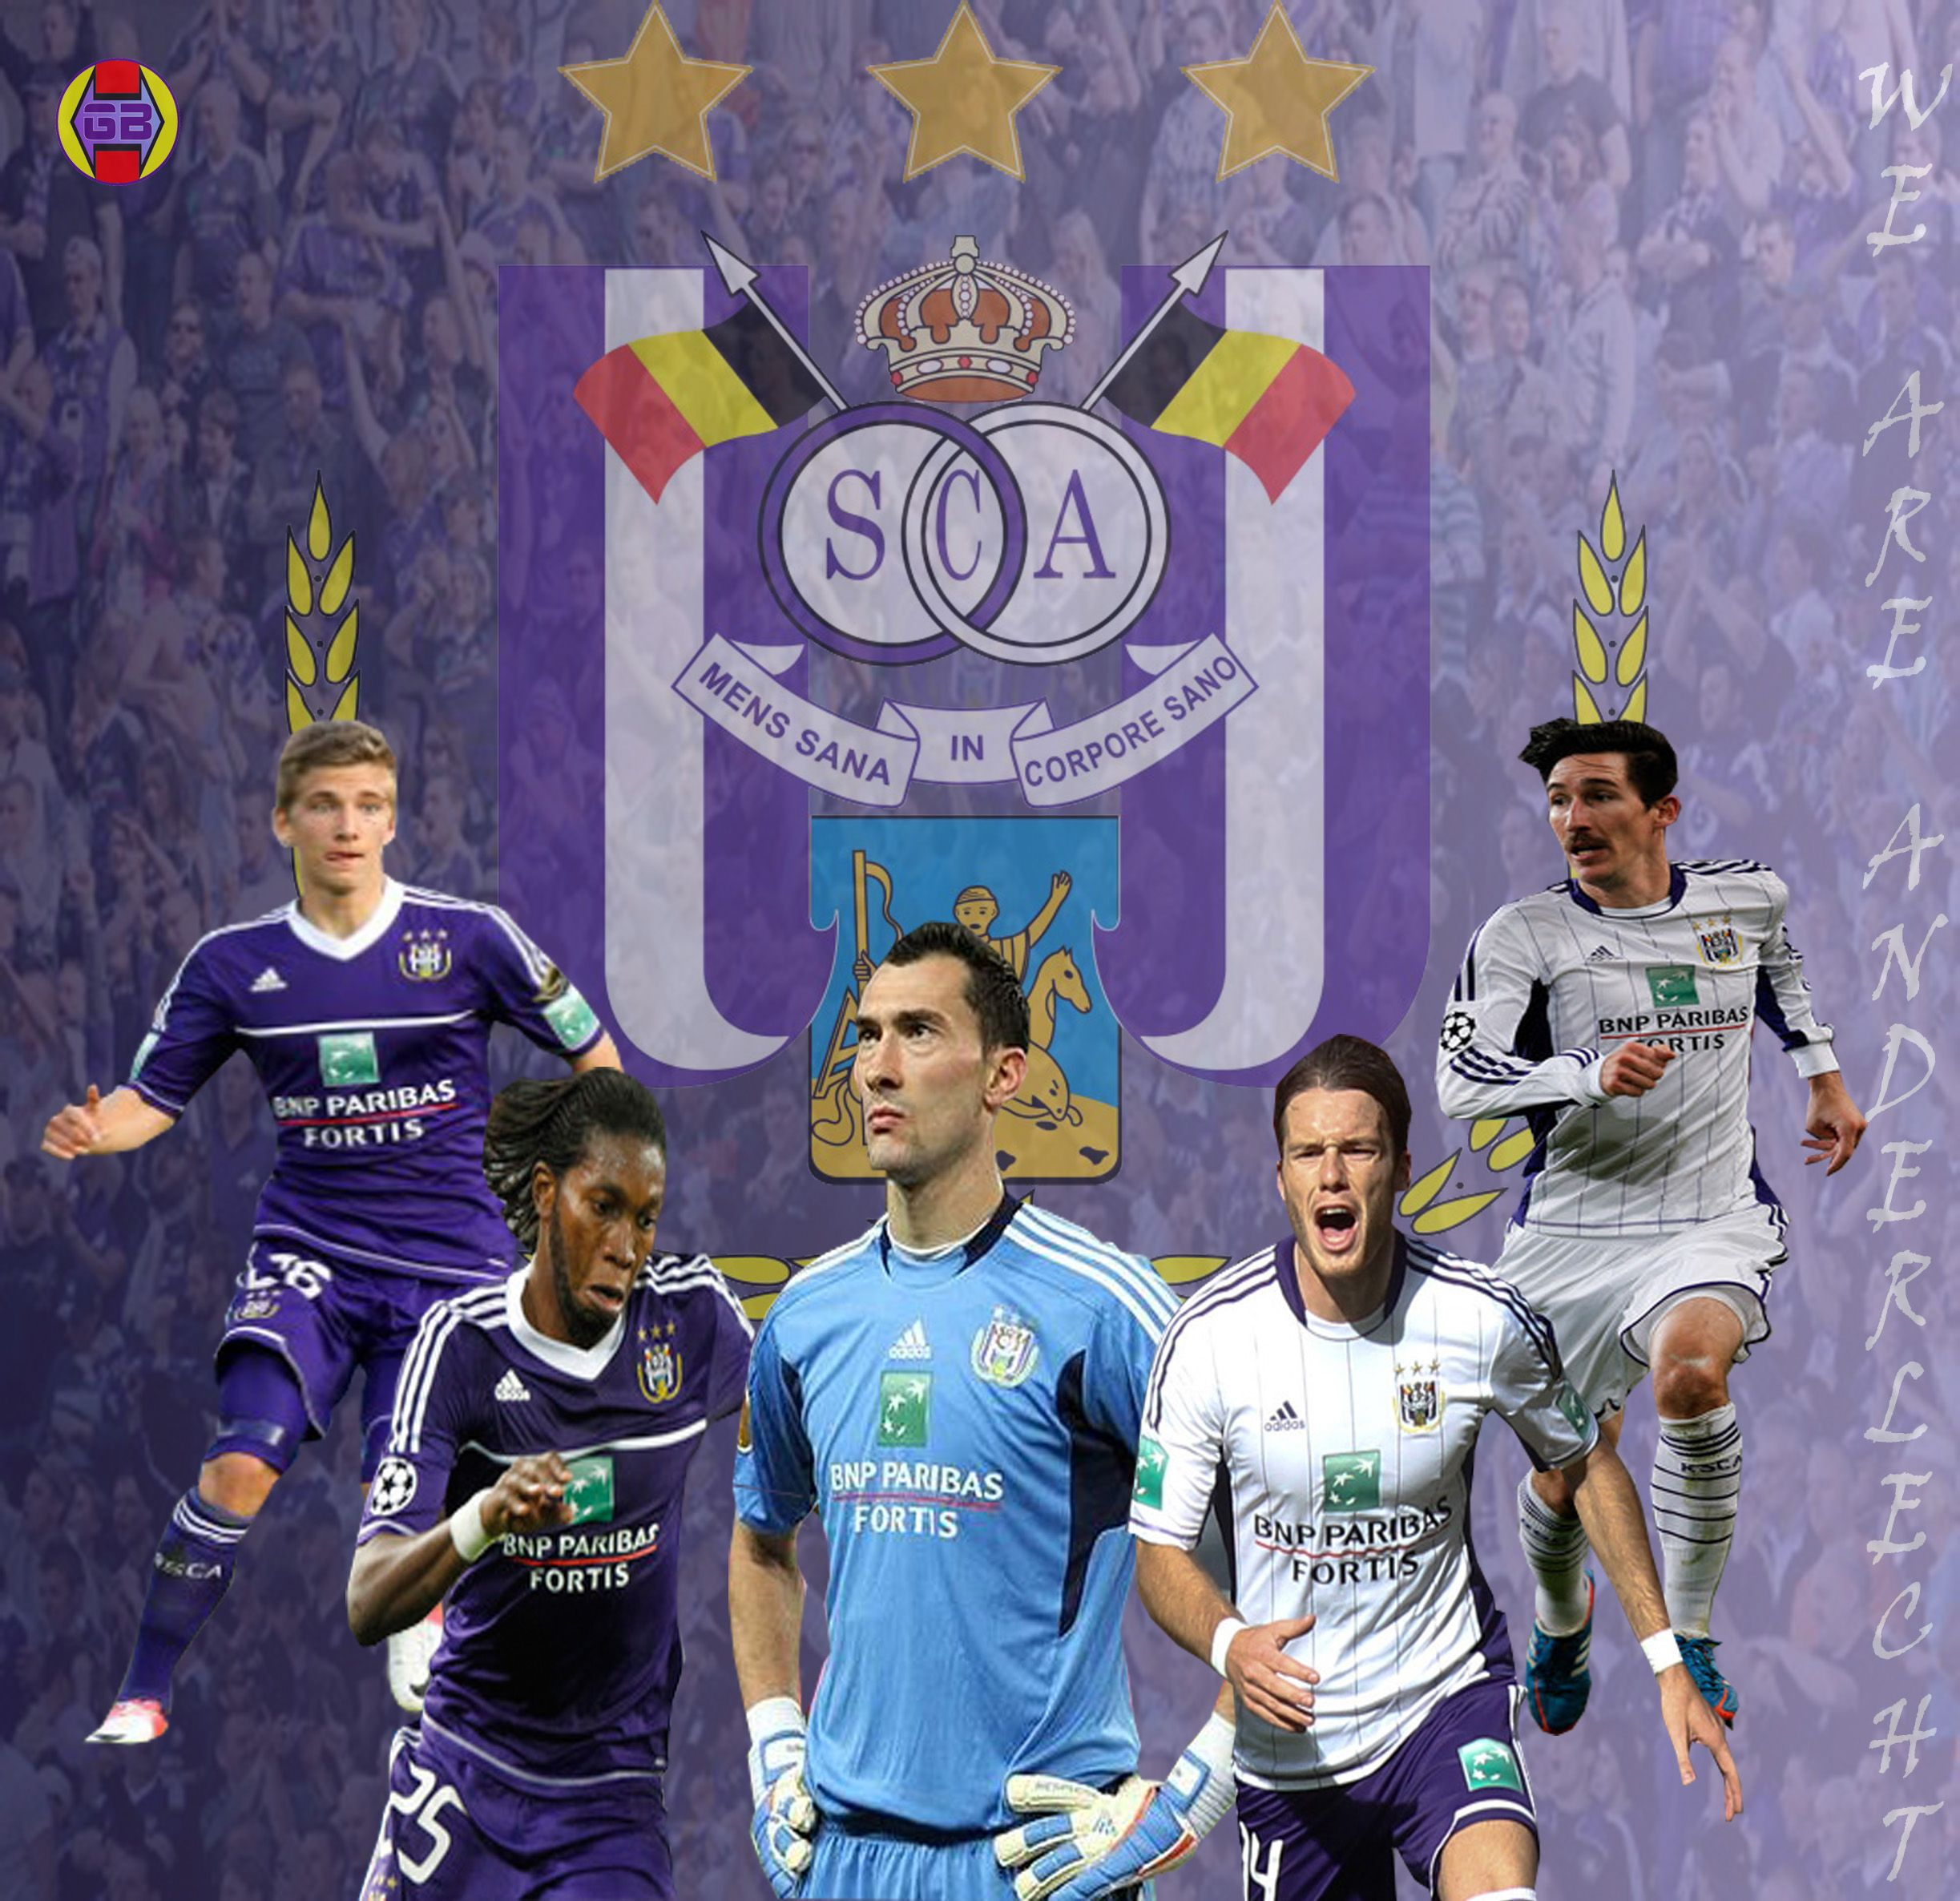 Chancel Mbemba Wallpaper: RSC Anderlecht Wallpaper